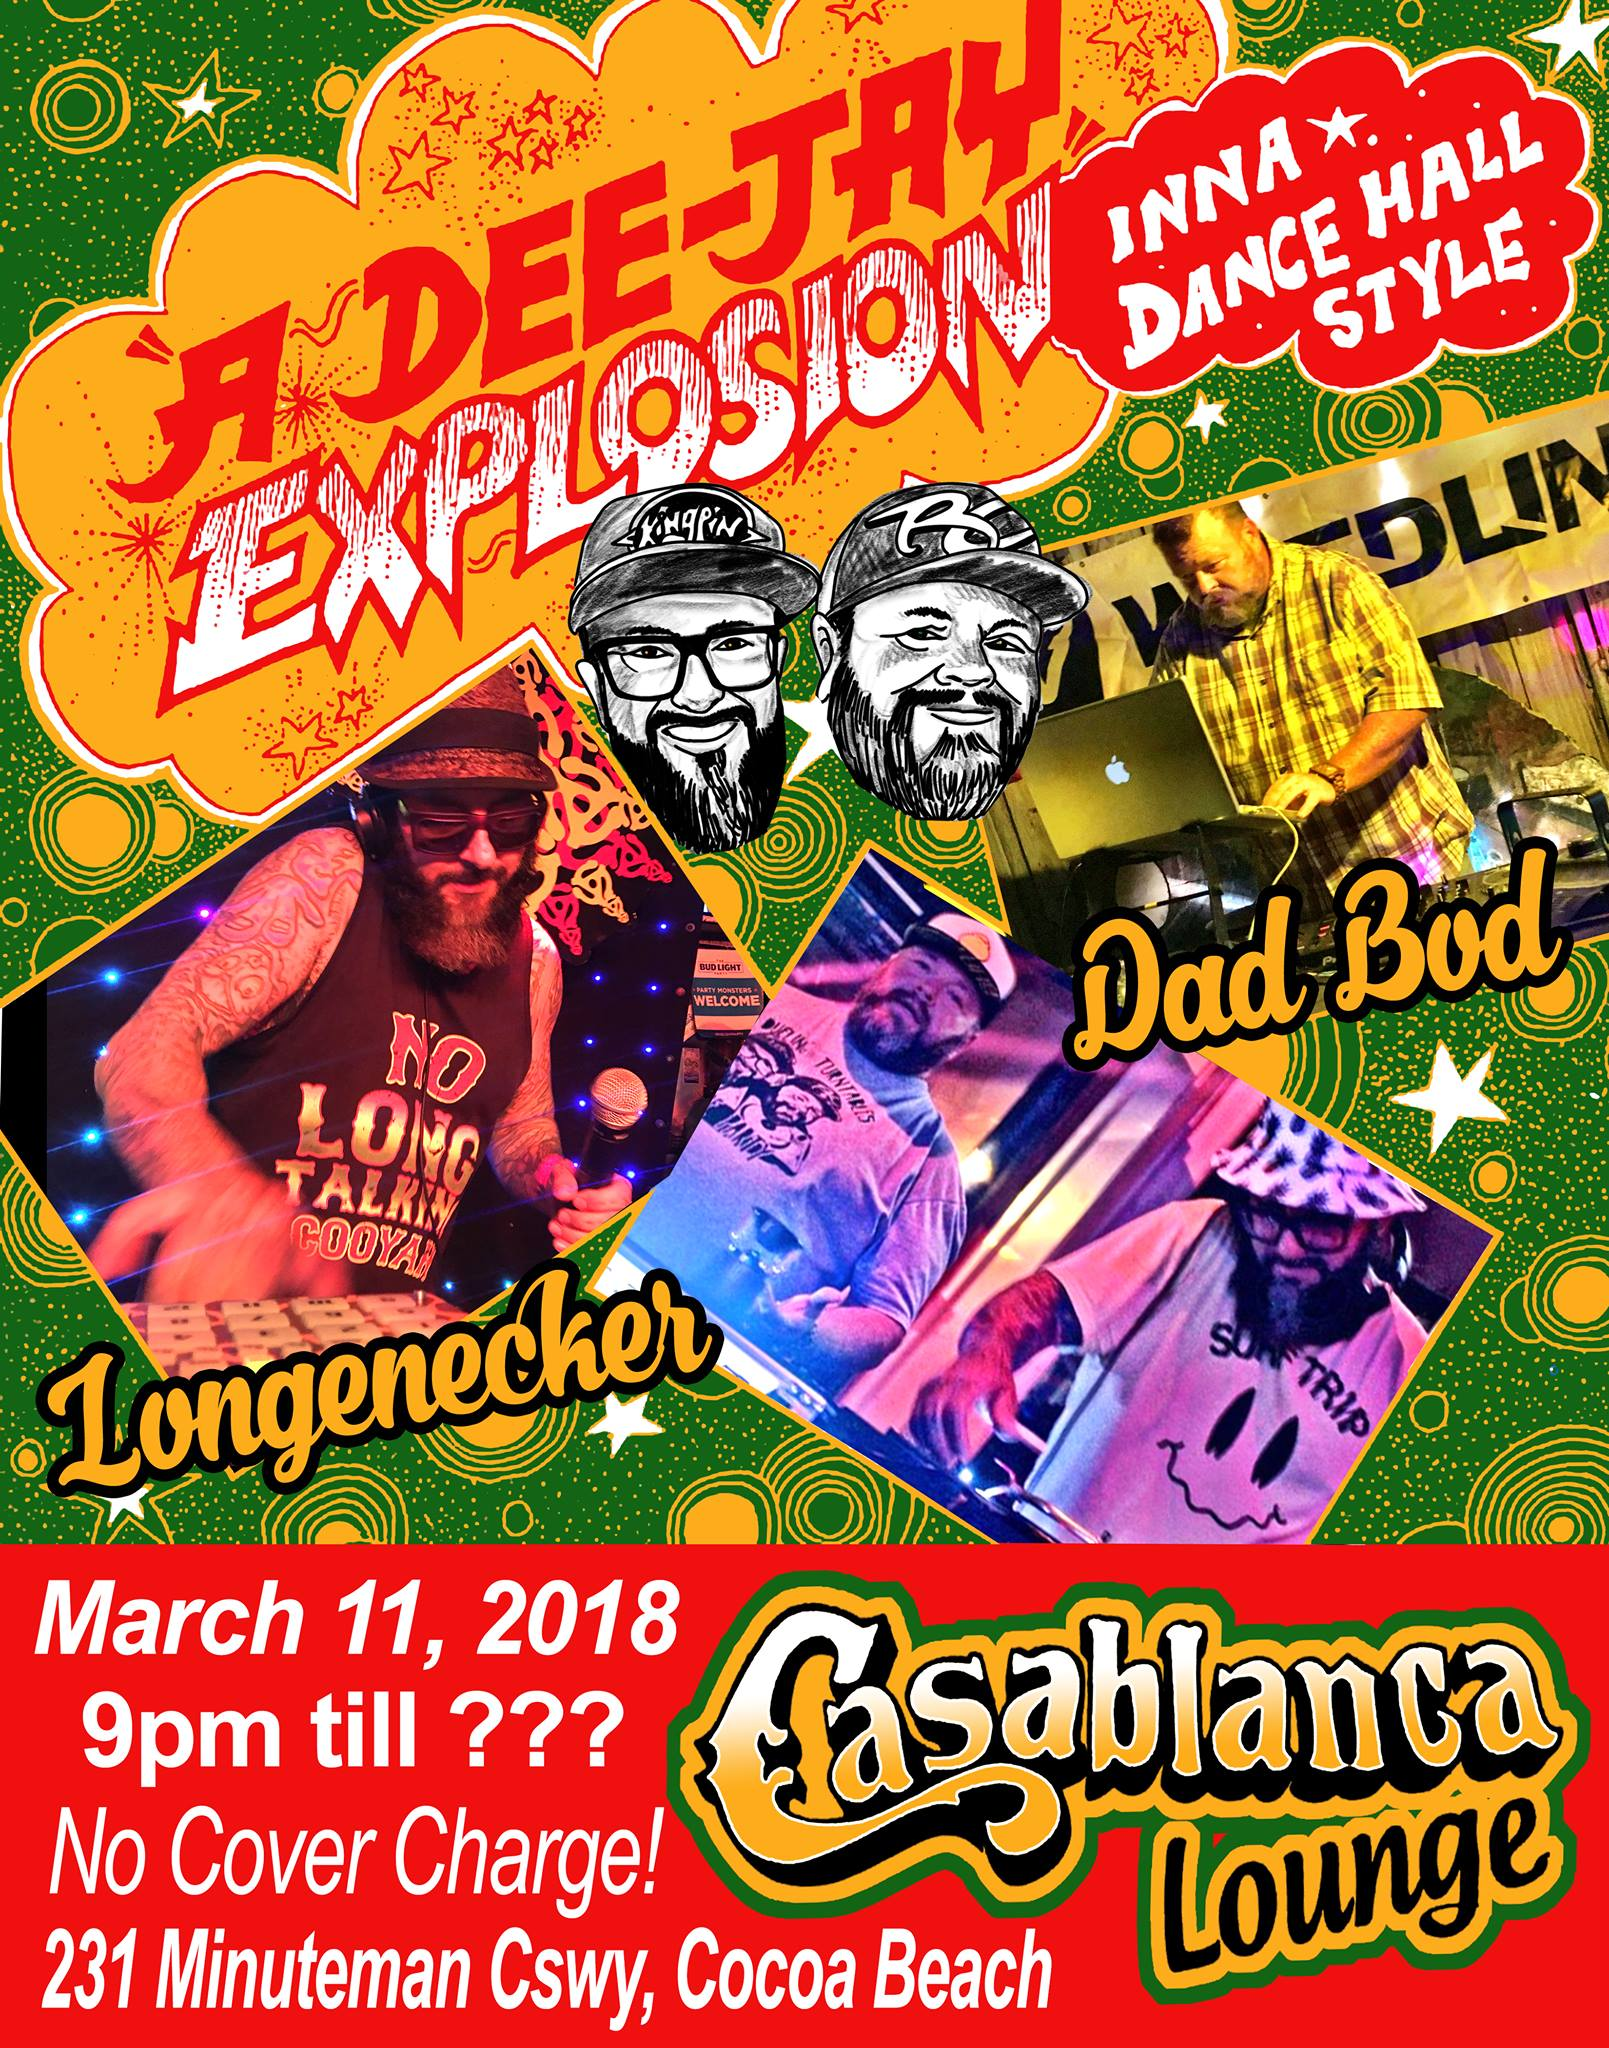 A Dee-Jay Explosion at Casablanca March 11th - After Party at Casablanca